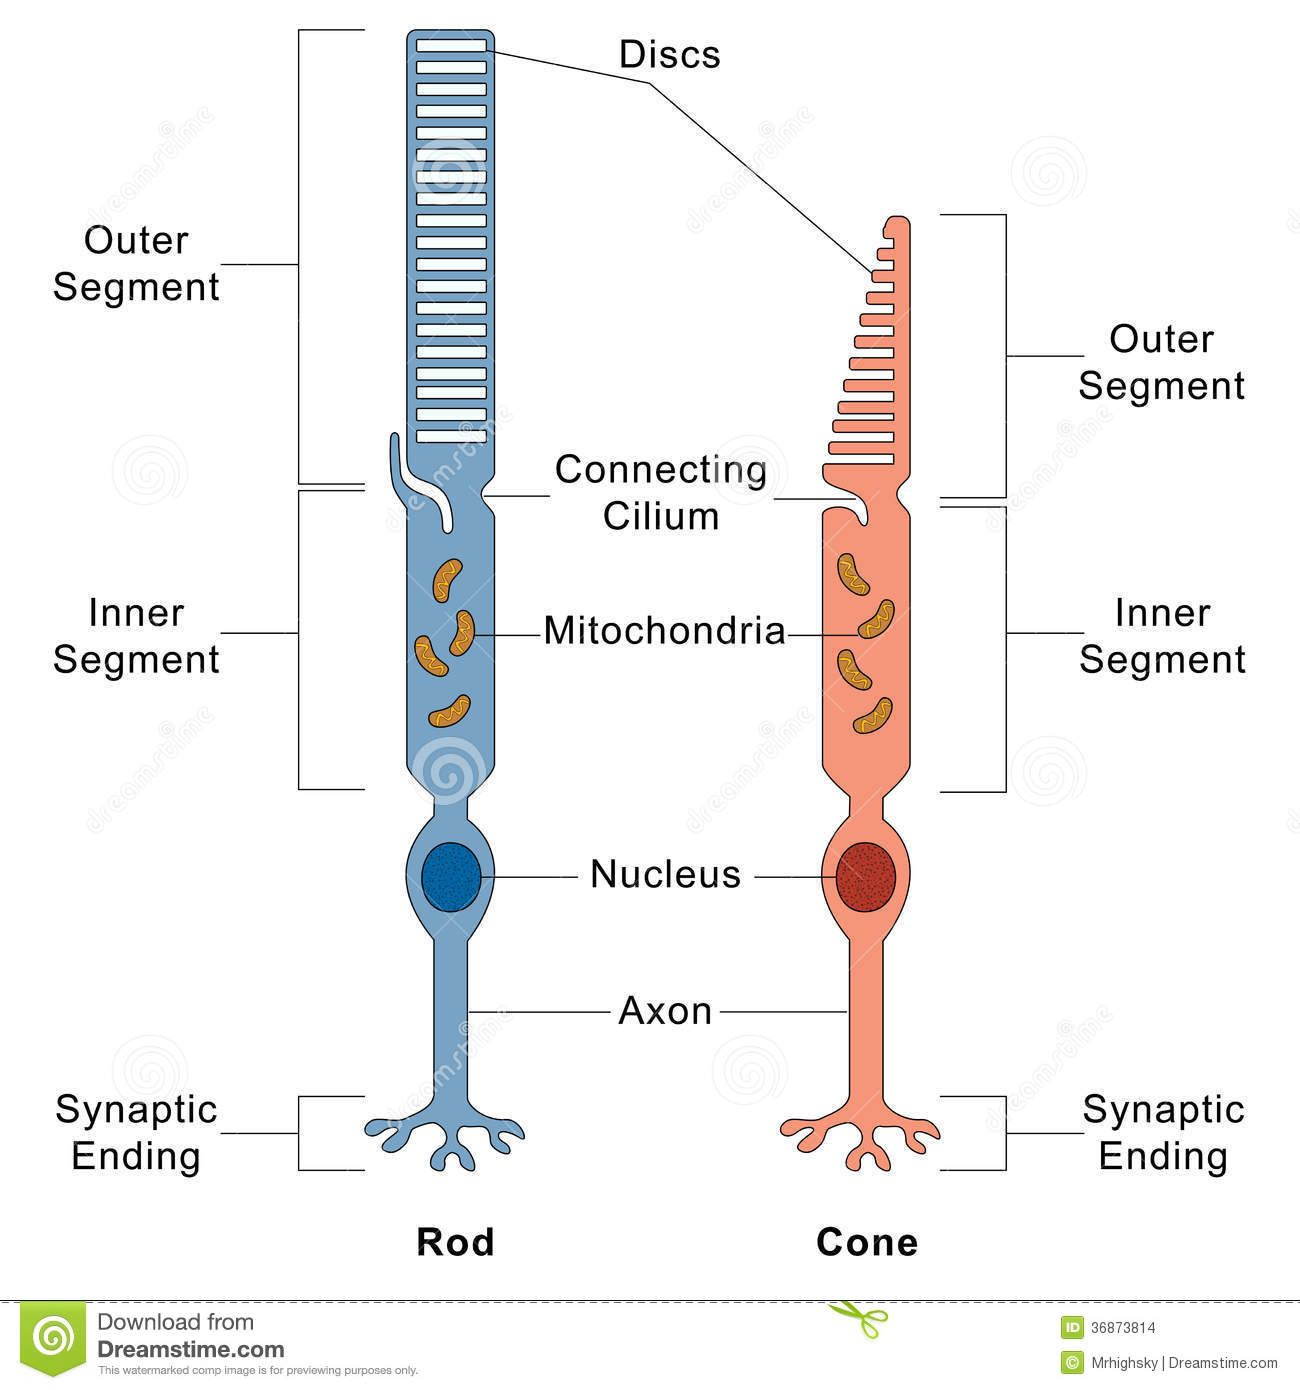 Image Result For Rod And Cone Cell Diagram